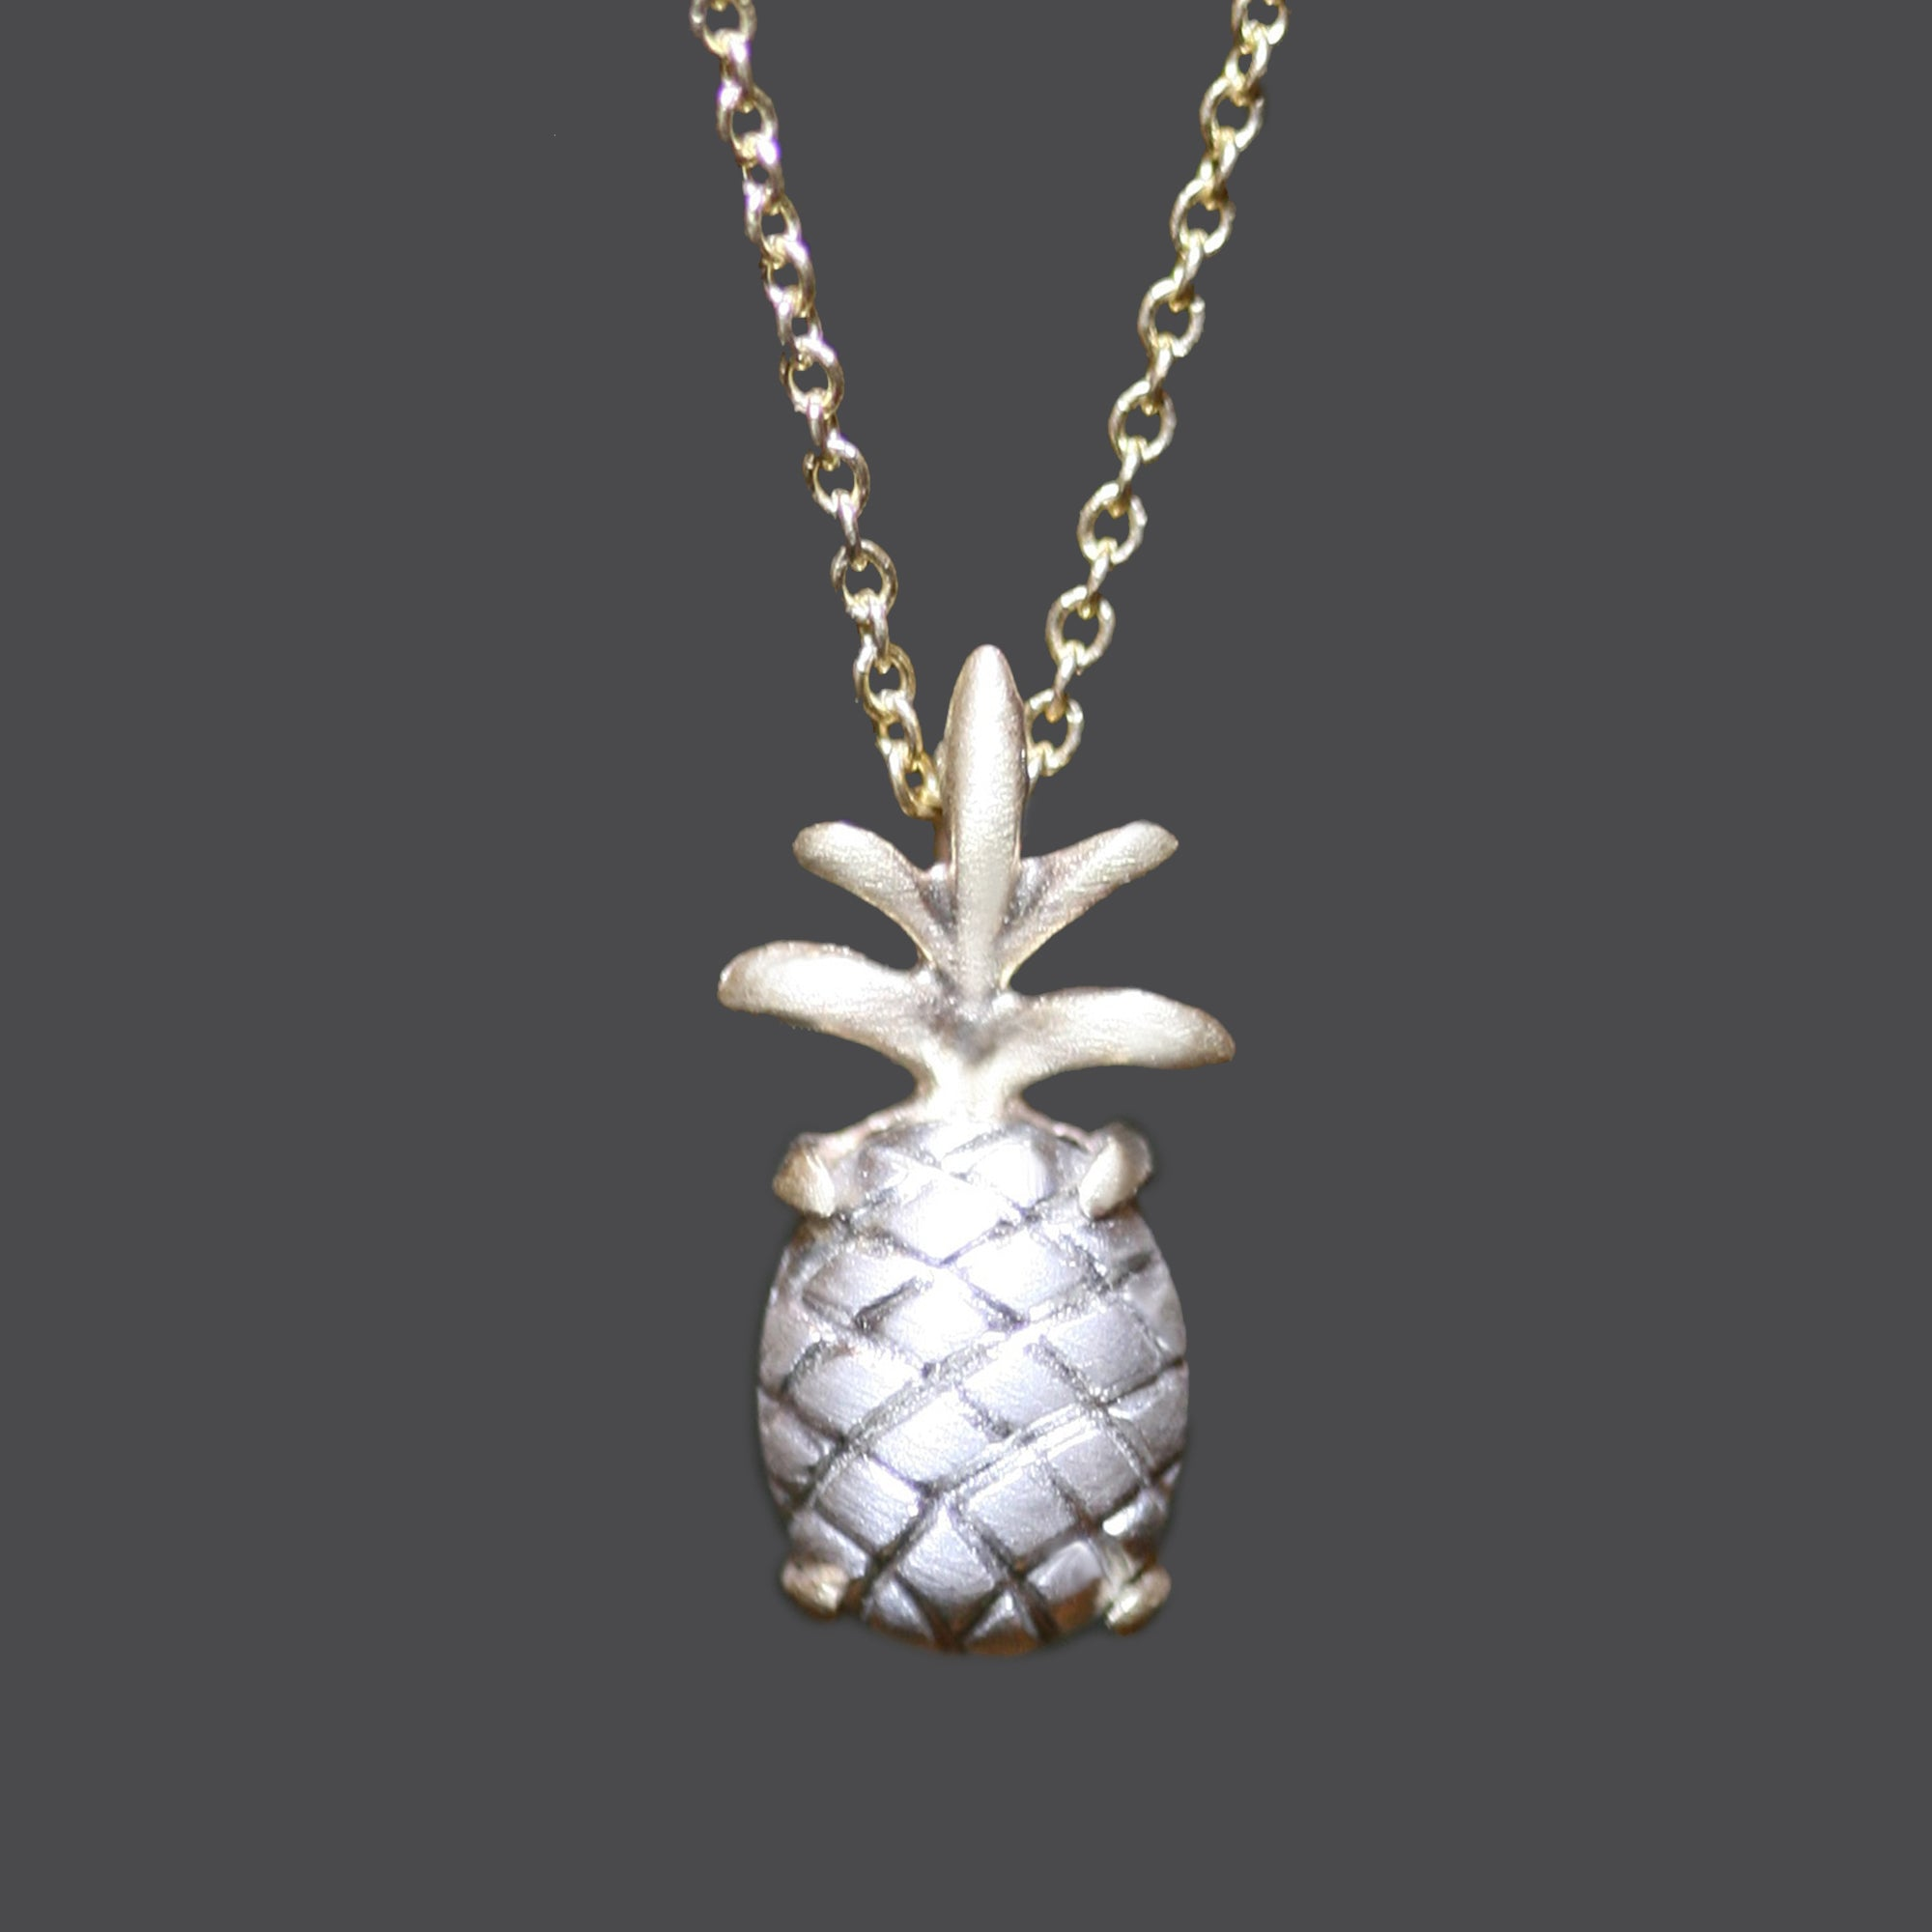 rosa products rose gold vila pineapple necklace silver elegant friendship